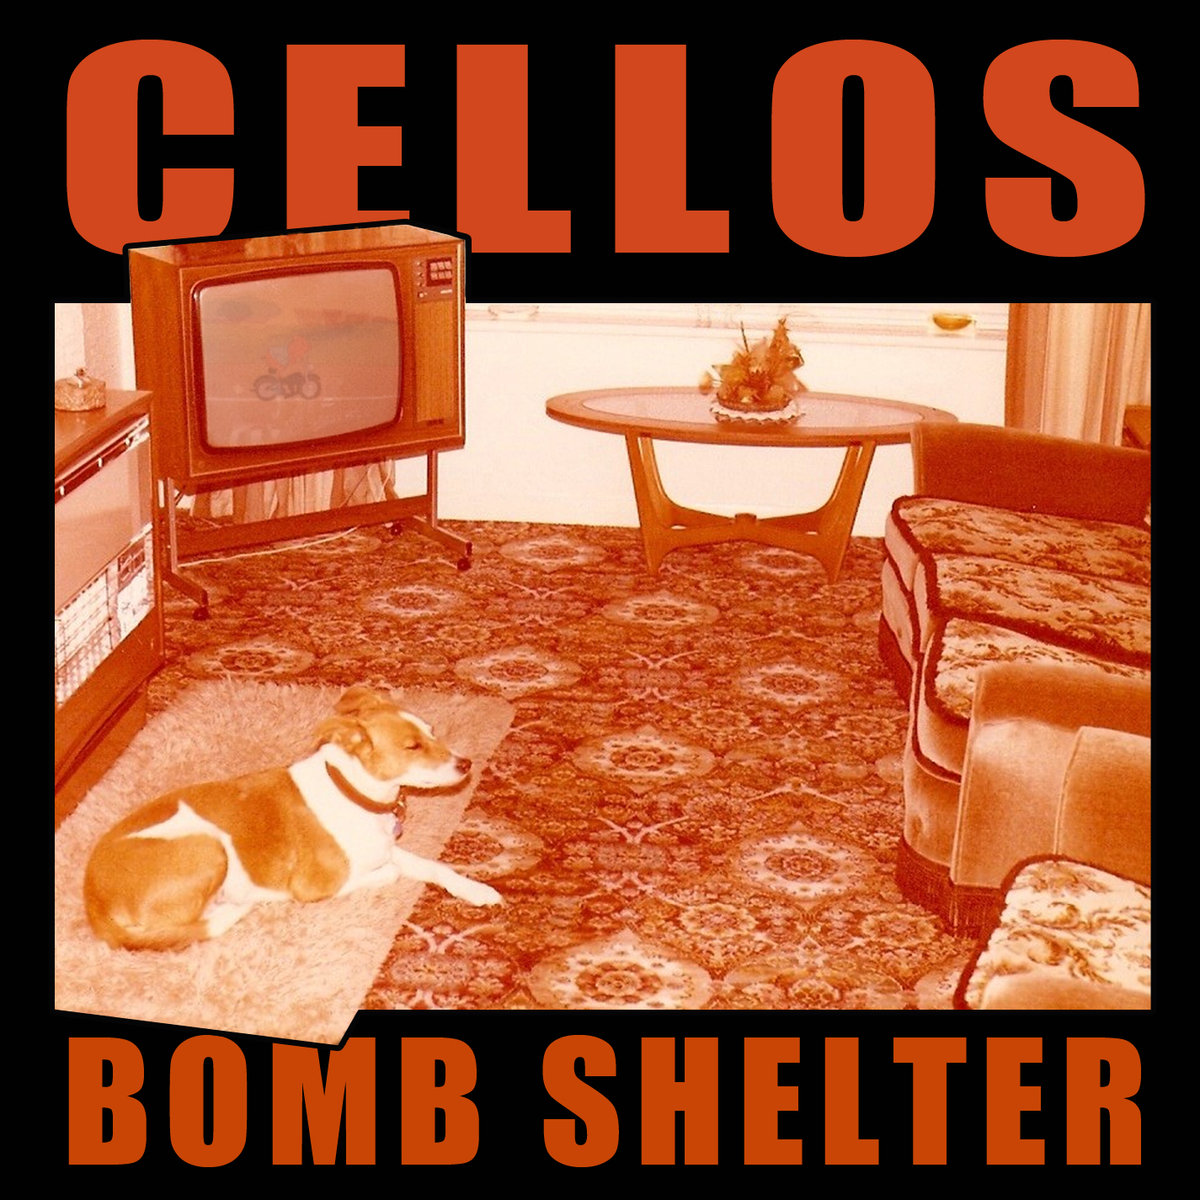 CELLOS - Bomb Shelter